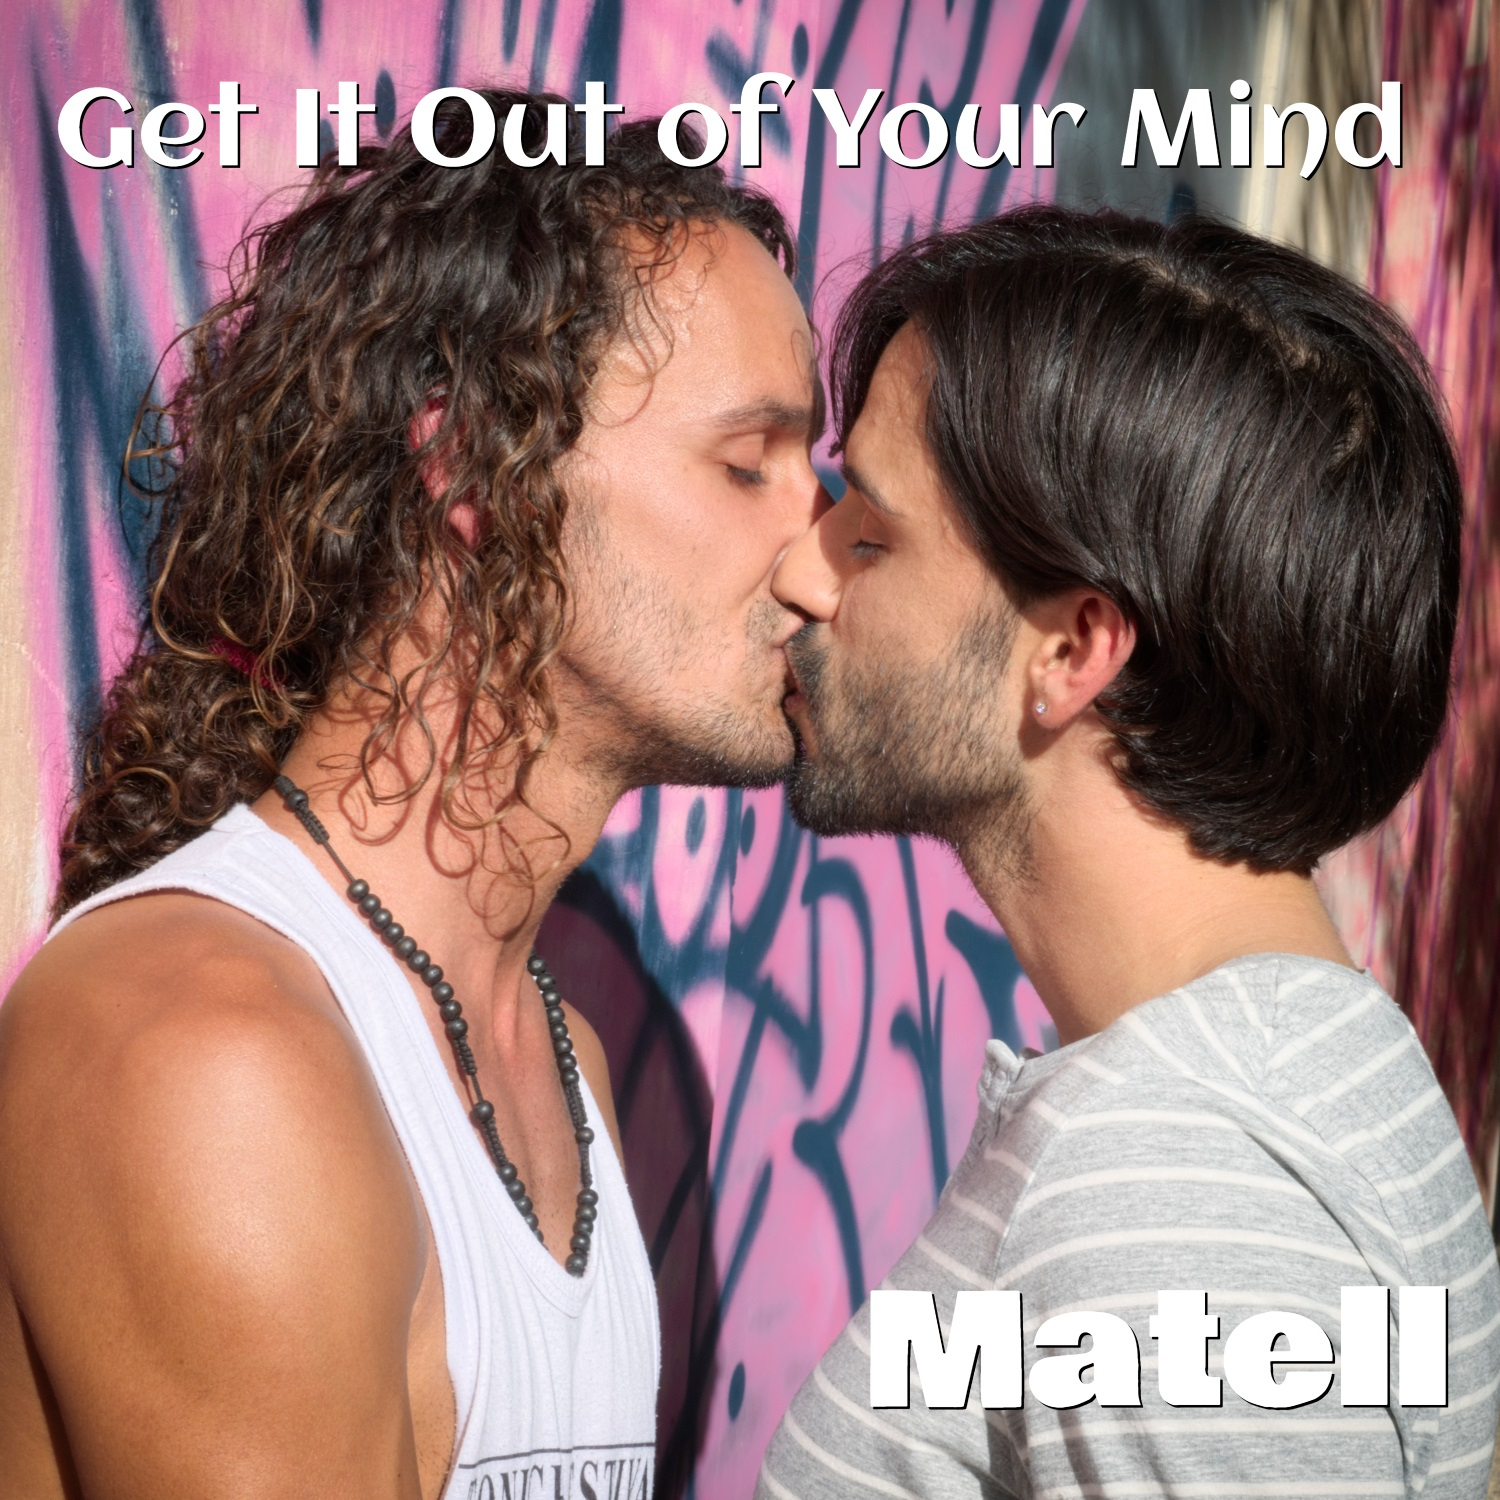 /uploads2/41484_9_4_2019_9_41_23_PM_-_Get It Out of Your Mind (Old School Mix) 1500x1500.jpg